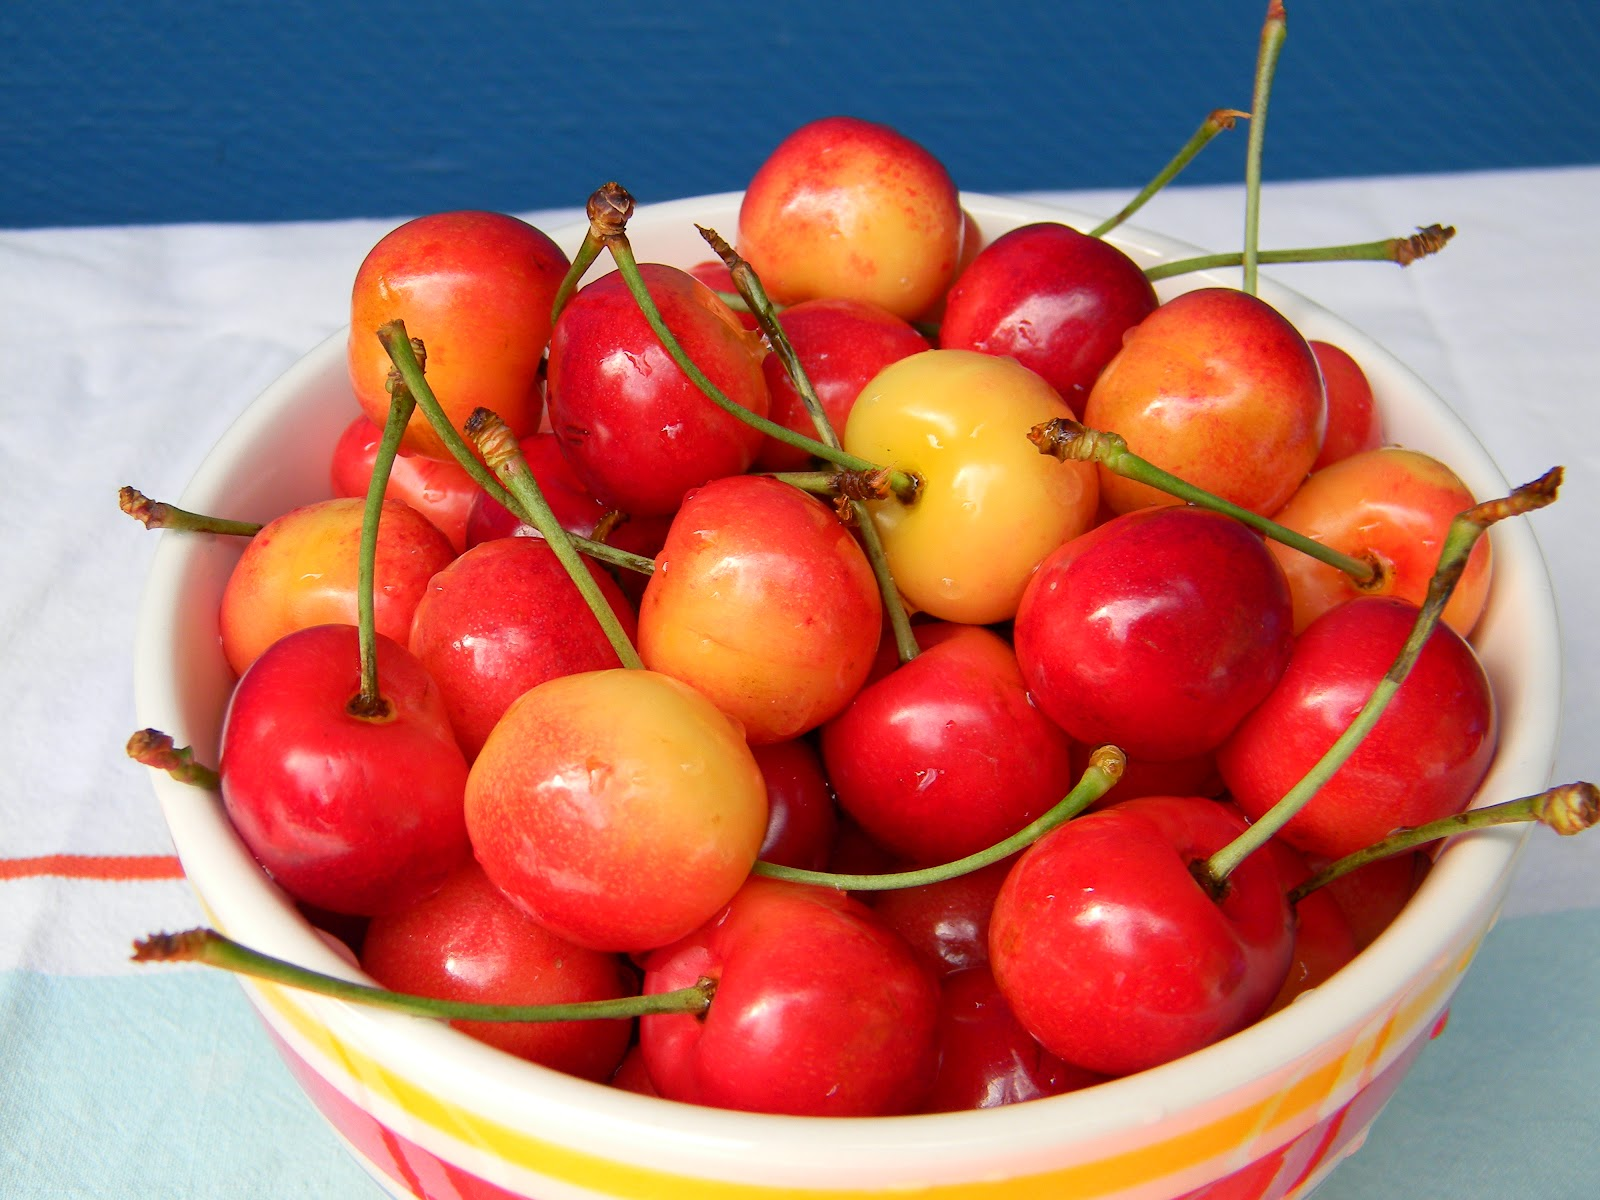 ... cherry bitters cherry liqueur rainier cherries rainier cherries carbs